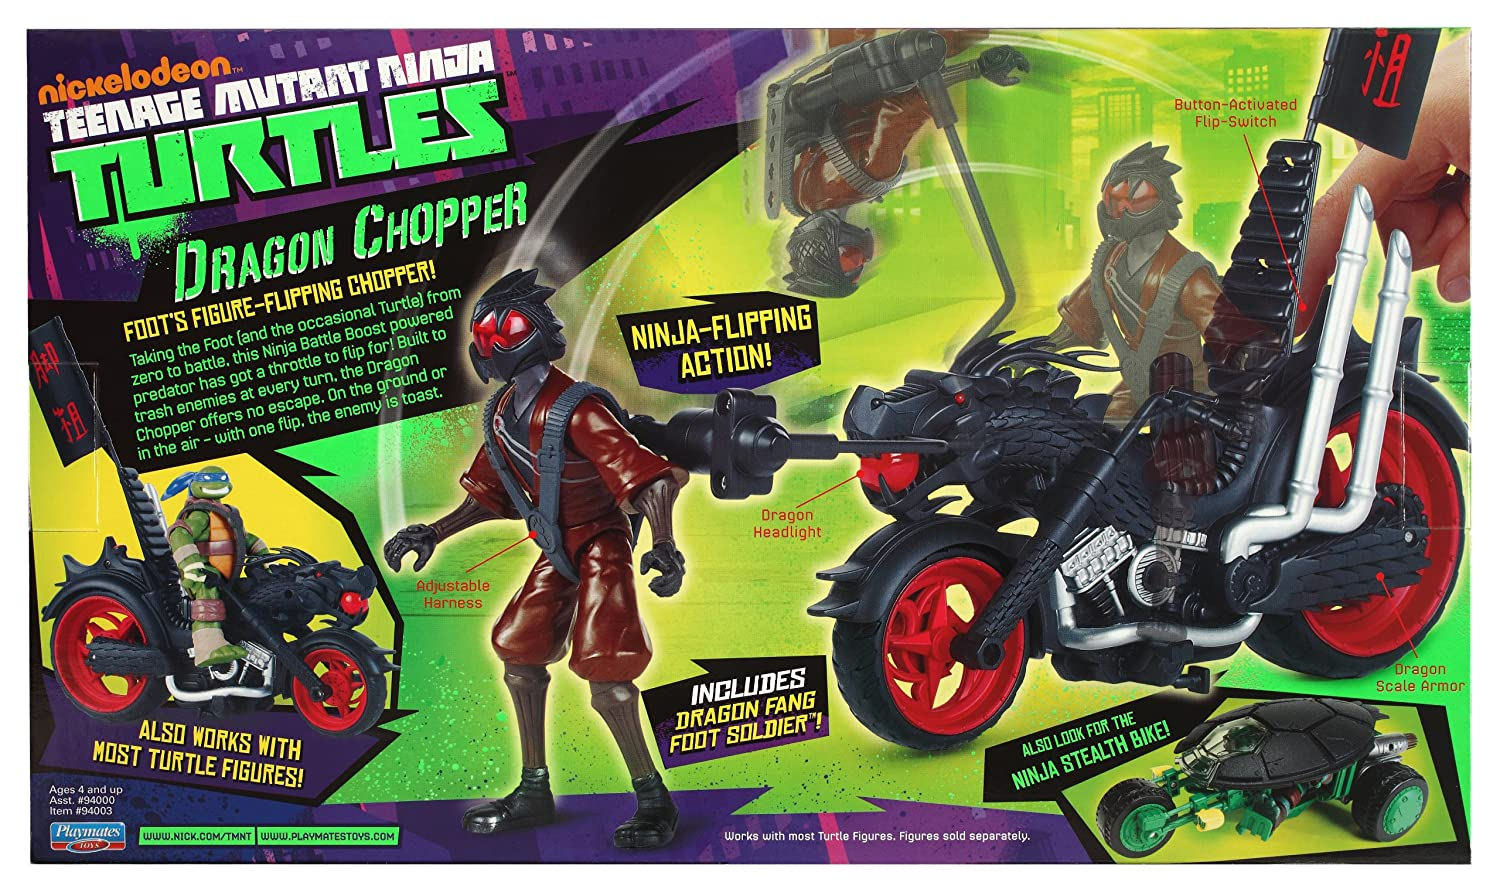 Amazon.com: Teenage Mutant Ninja Turtles Dragon Chopper ...